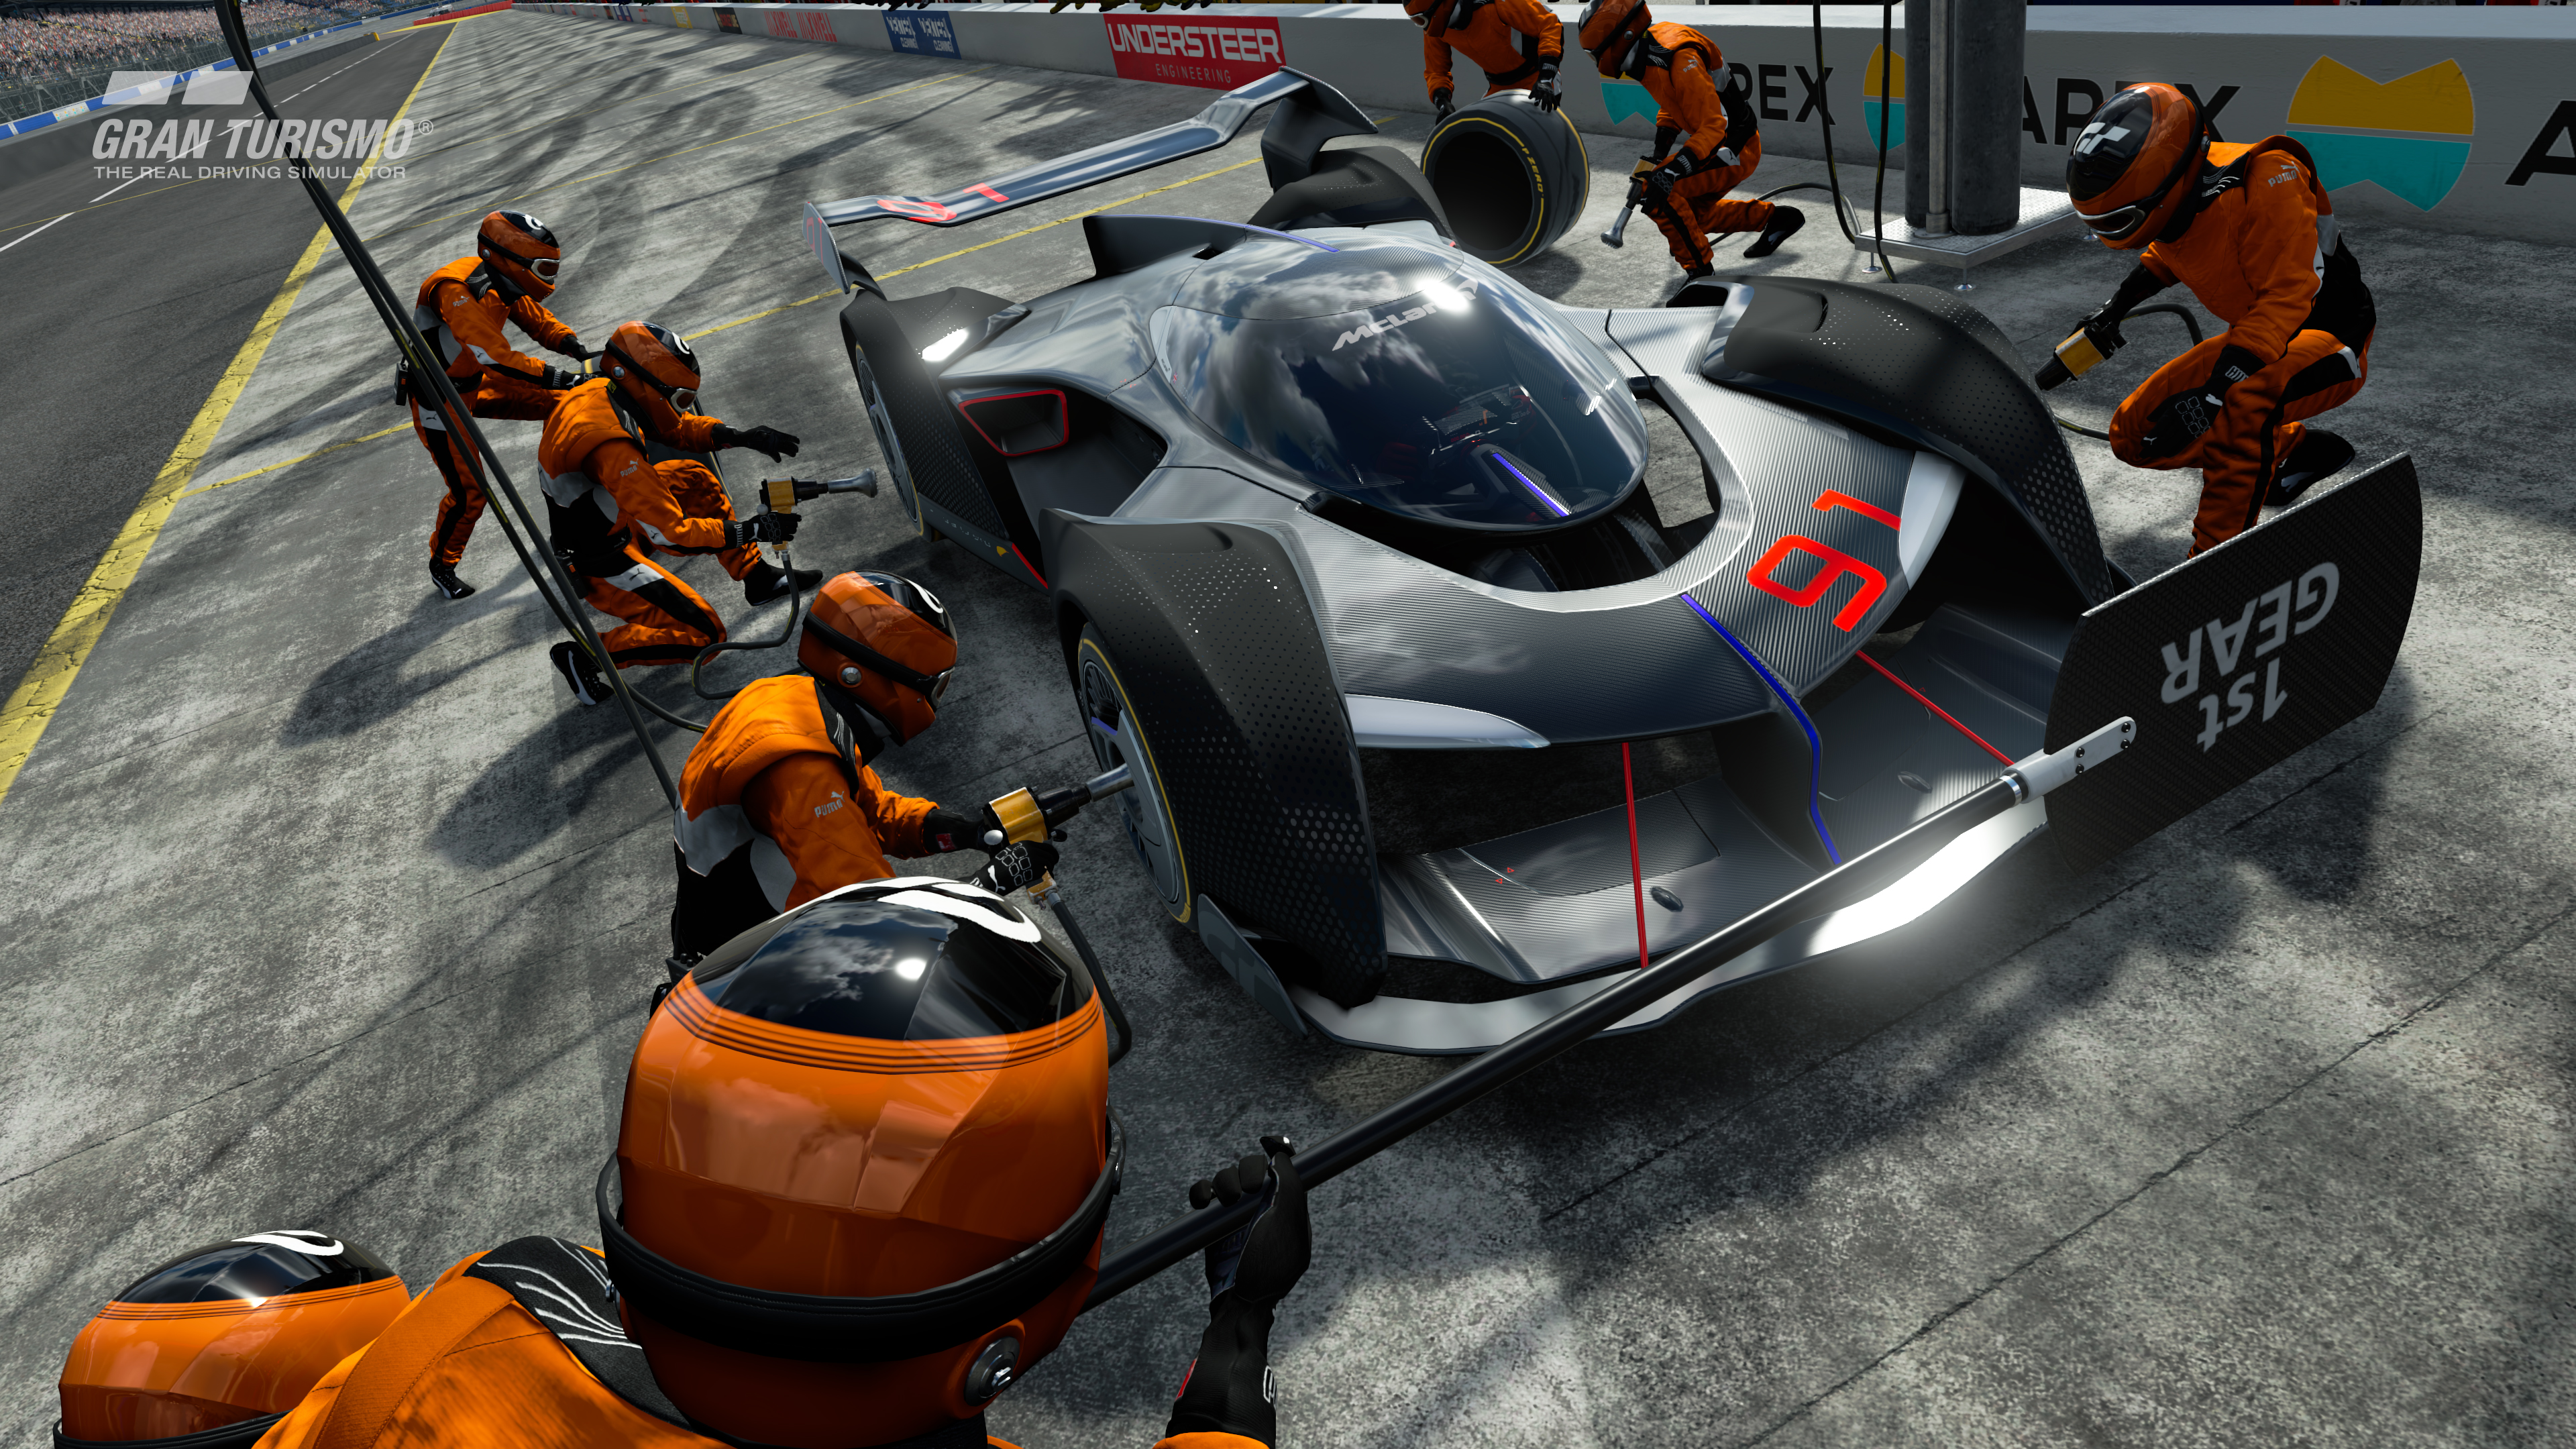 McLaren Ultimate Vision GT for PS4 Gran Turismo Sport 4K3558810820 - McLaren Ultimate Vision GT for PS4 Gran Turismo Sport 4K - Vision, Ultimate, Turismo, Sport, PS4, Mclaren, Gran, For, Destiny